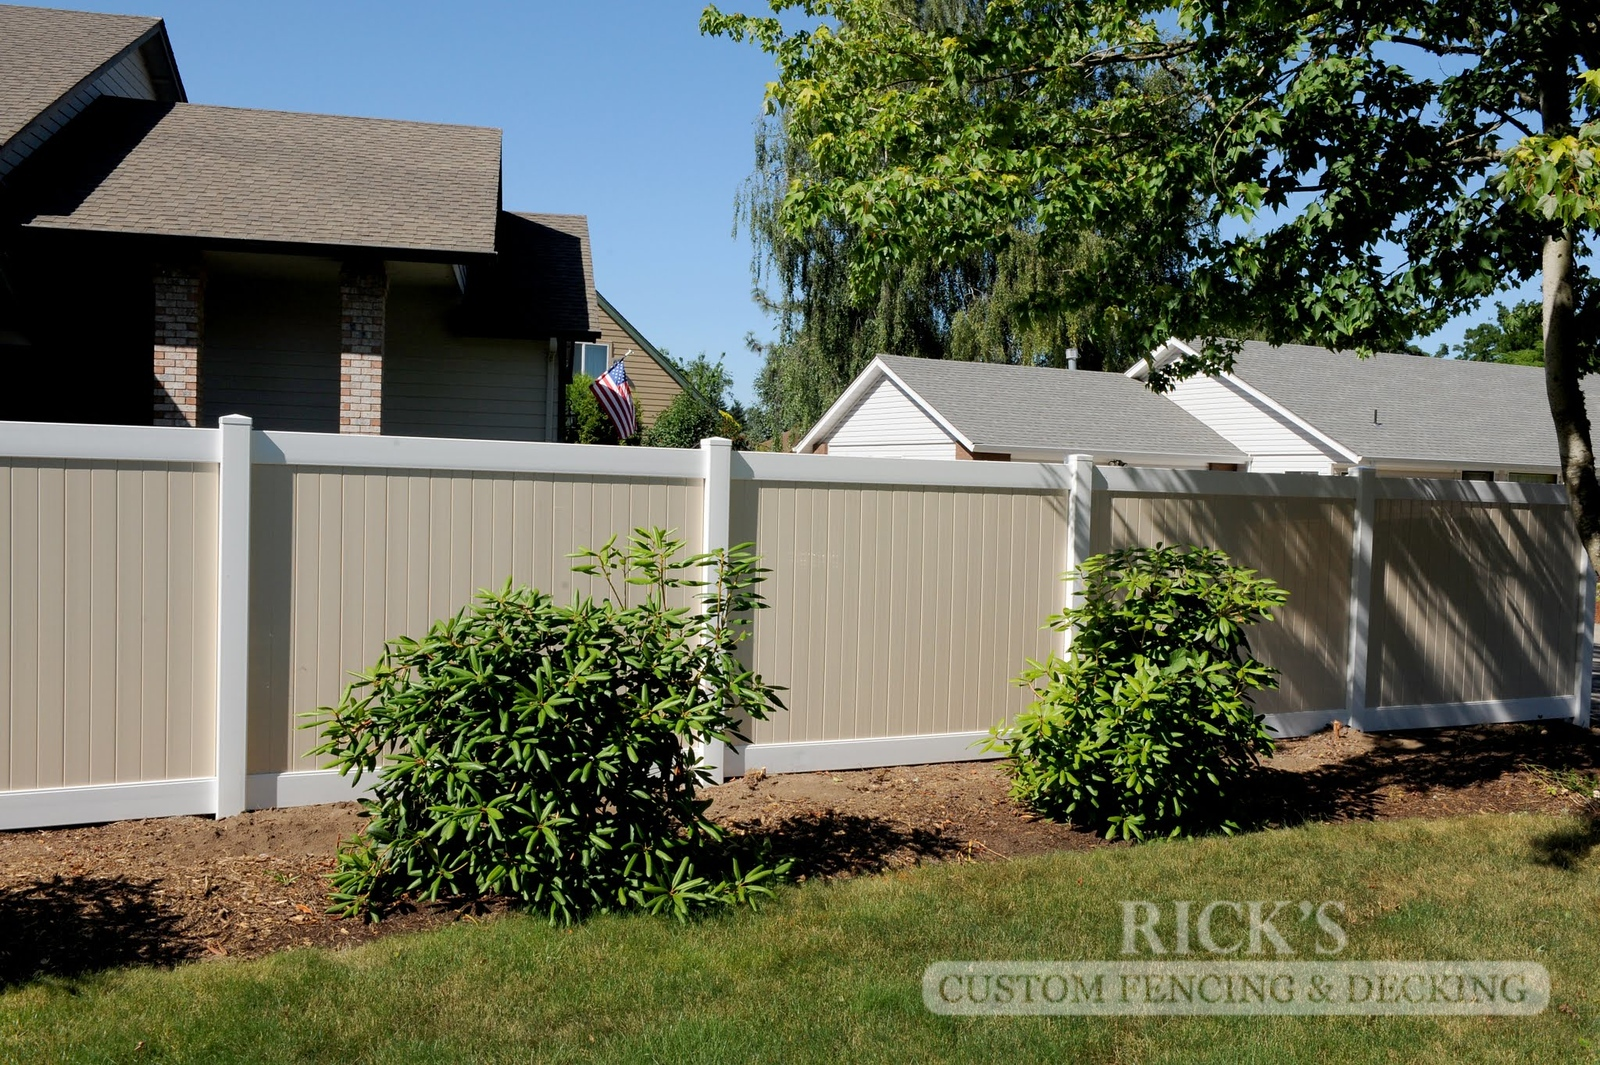 3022 - Vinyl Privacy Fencing